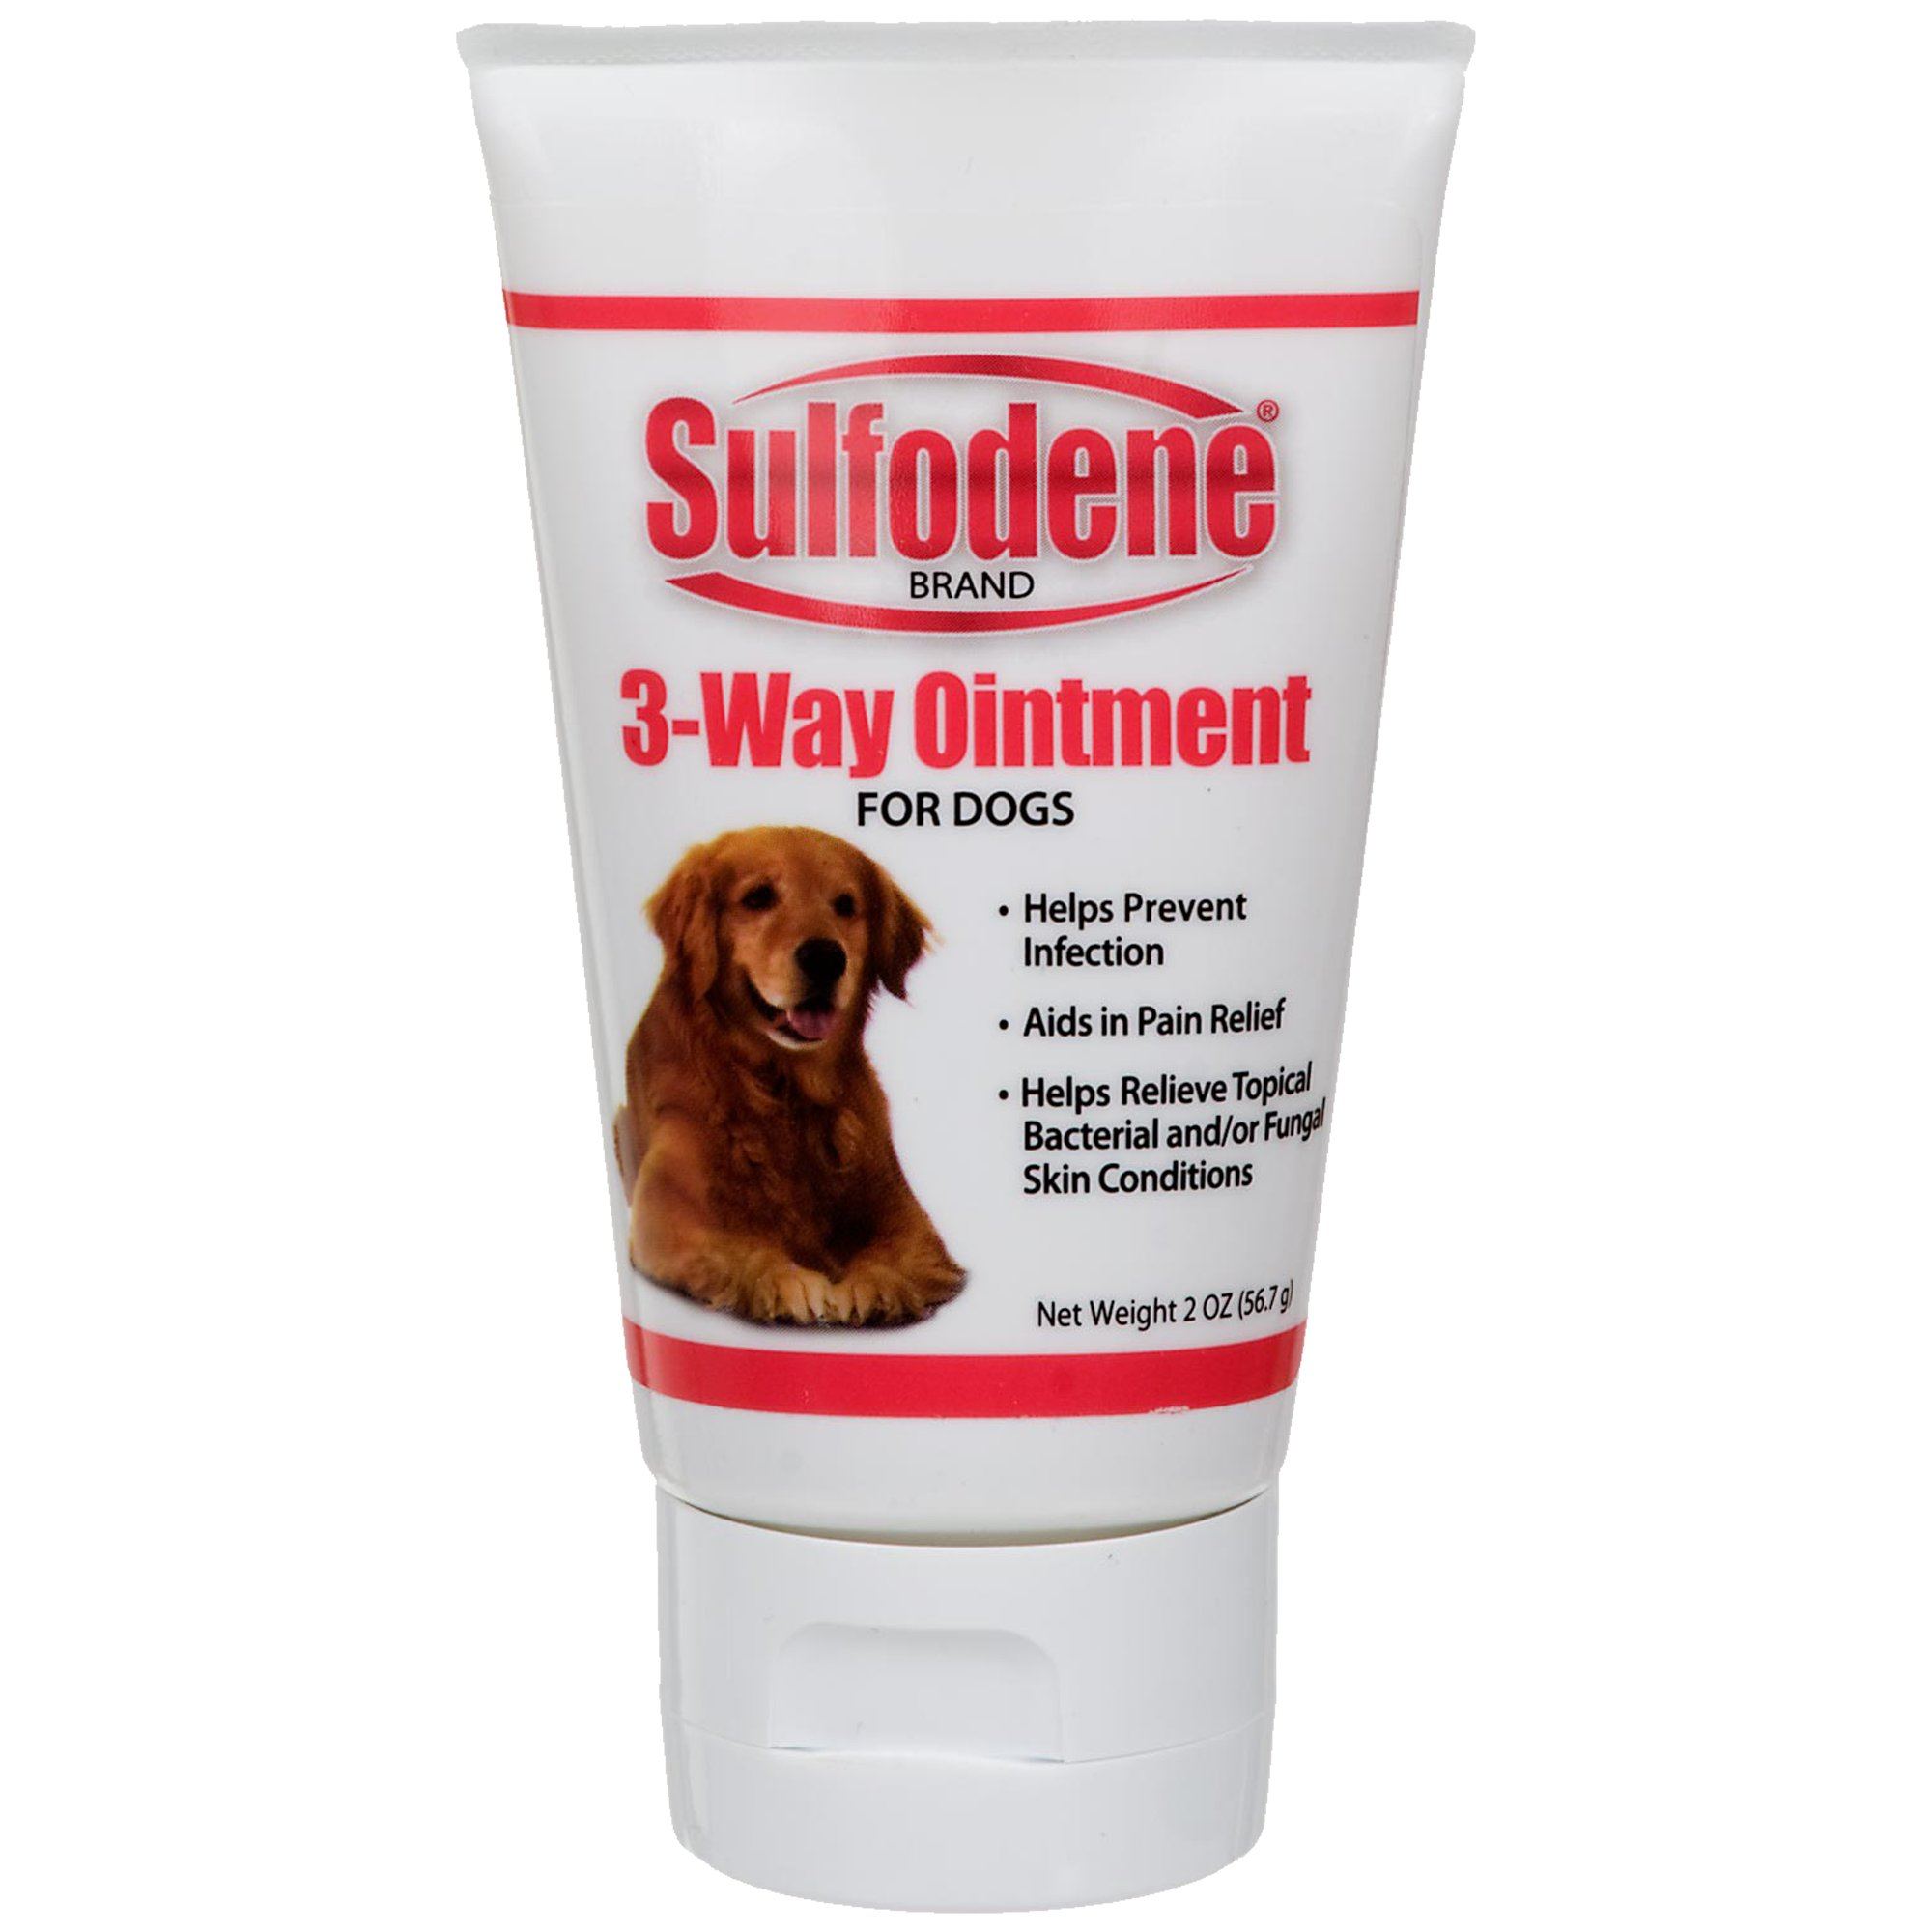 Sulfodene 3-Way Ointment for Dogs